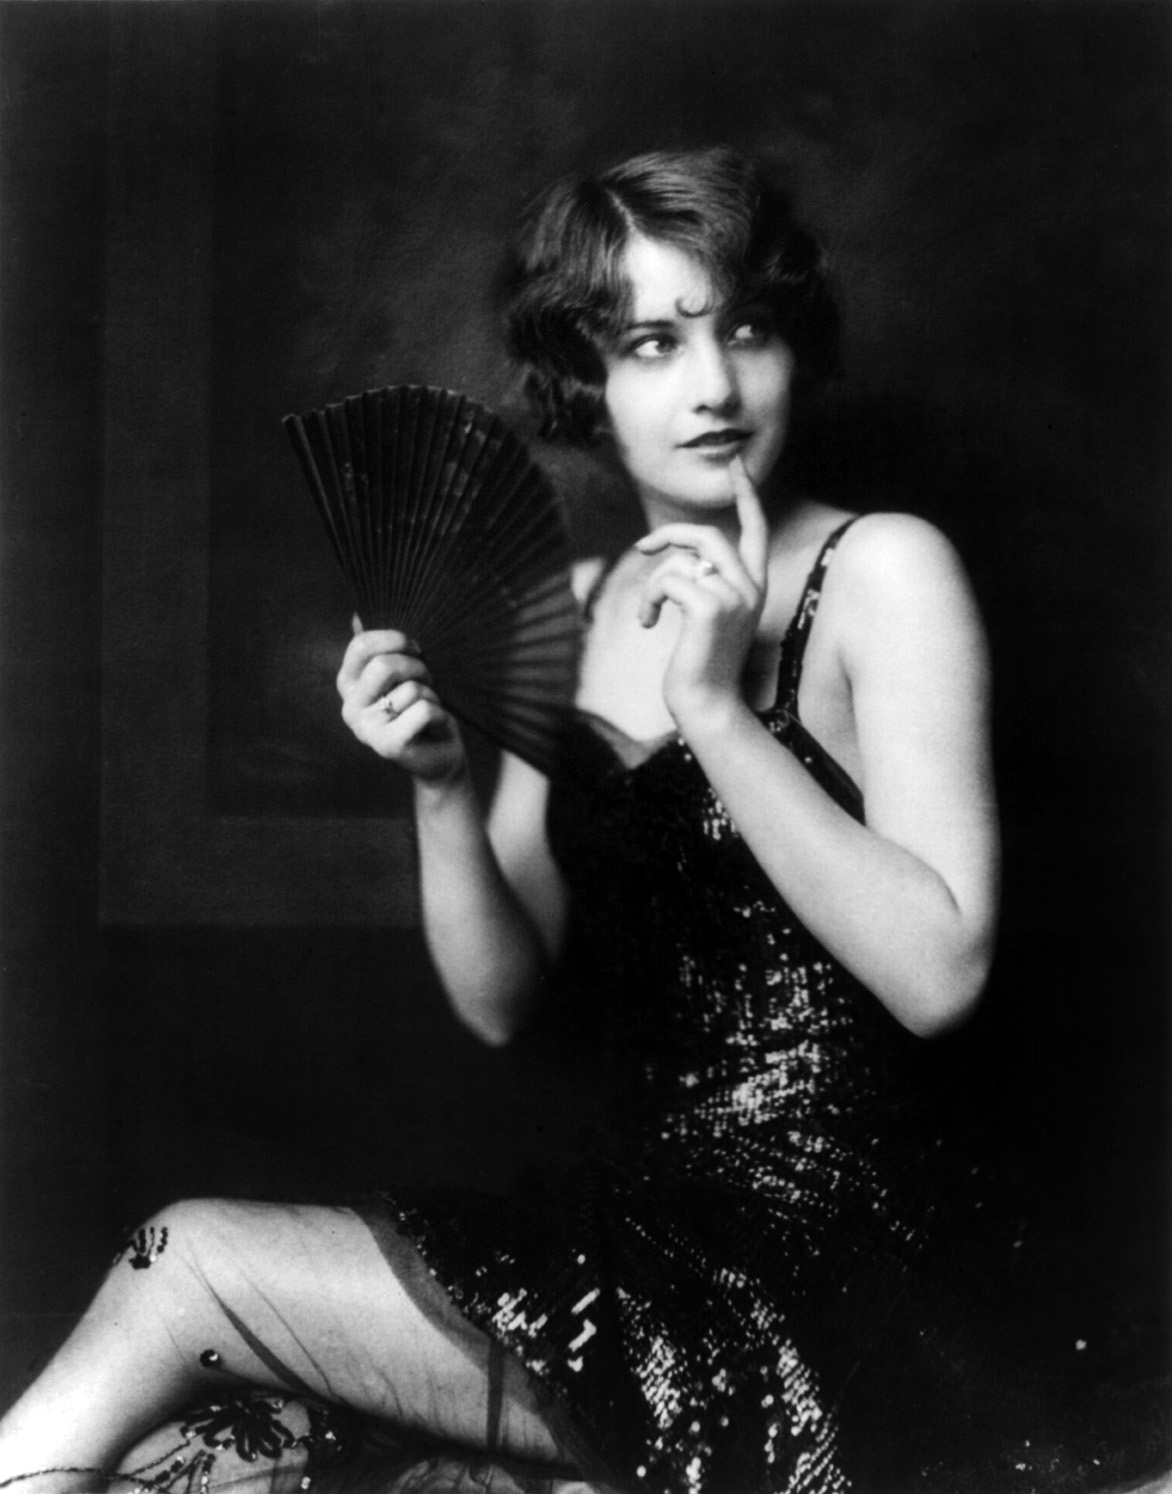 Barbara Stanwyck, Ziegfeld girl, by Alfred Cheney Johnston, ca. 1924 image via Wikimedia Commons